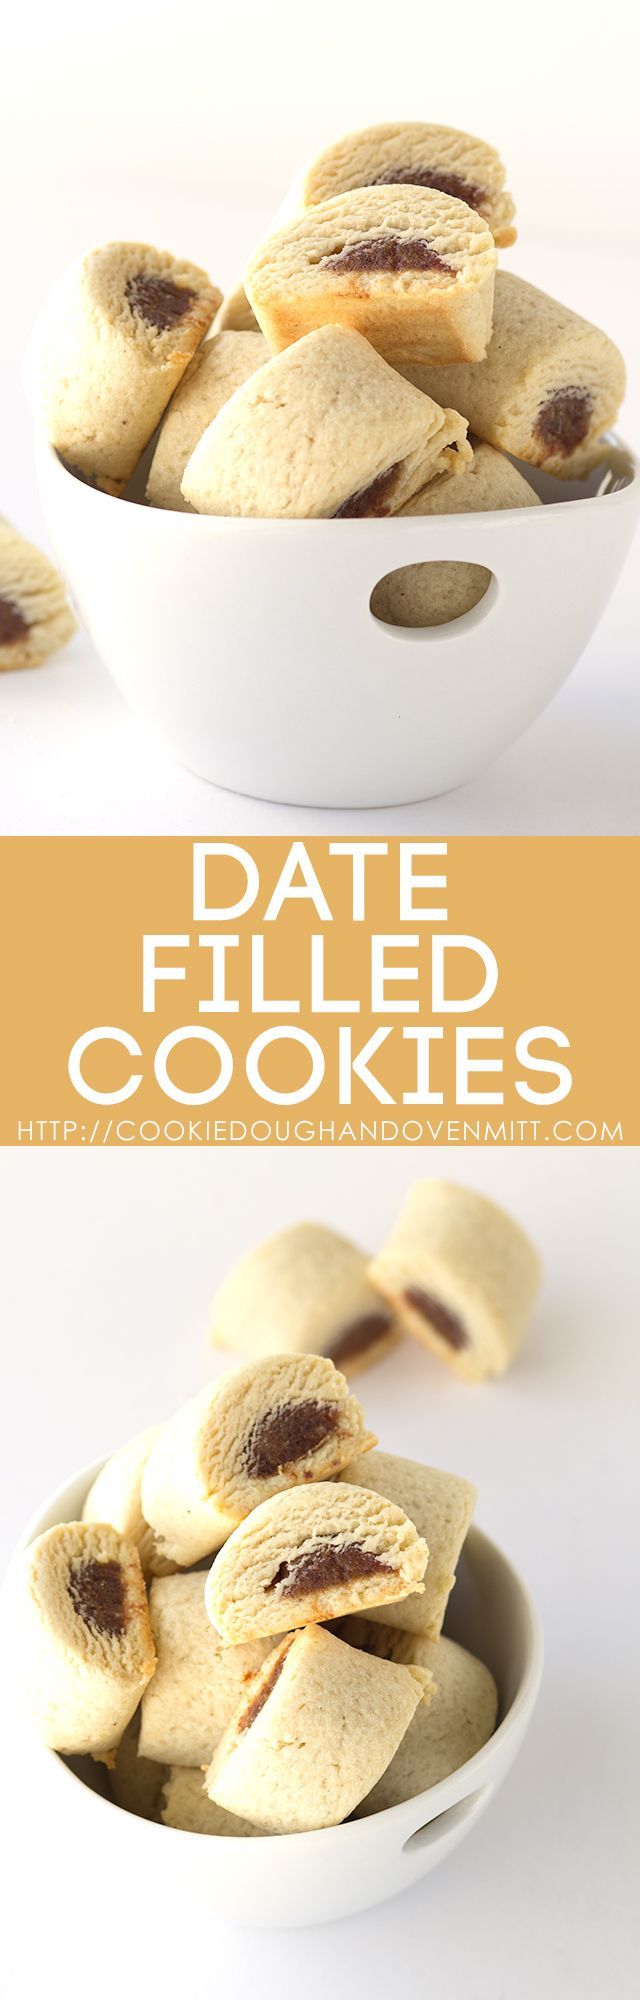 If you want a simple cookie, these date filled cookies are a must try! They remind me of a fig newton, but with a better texture. Plus, they're pretty!